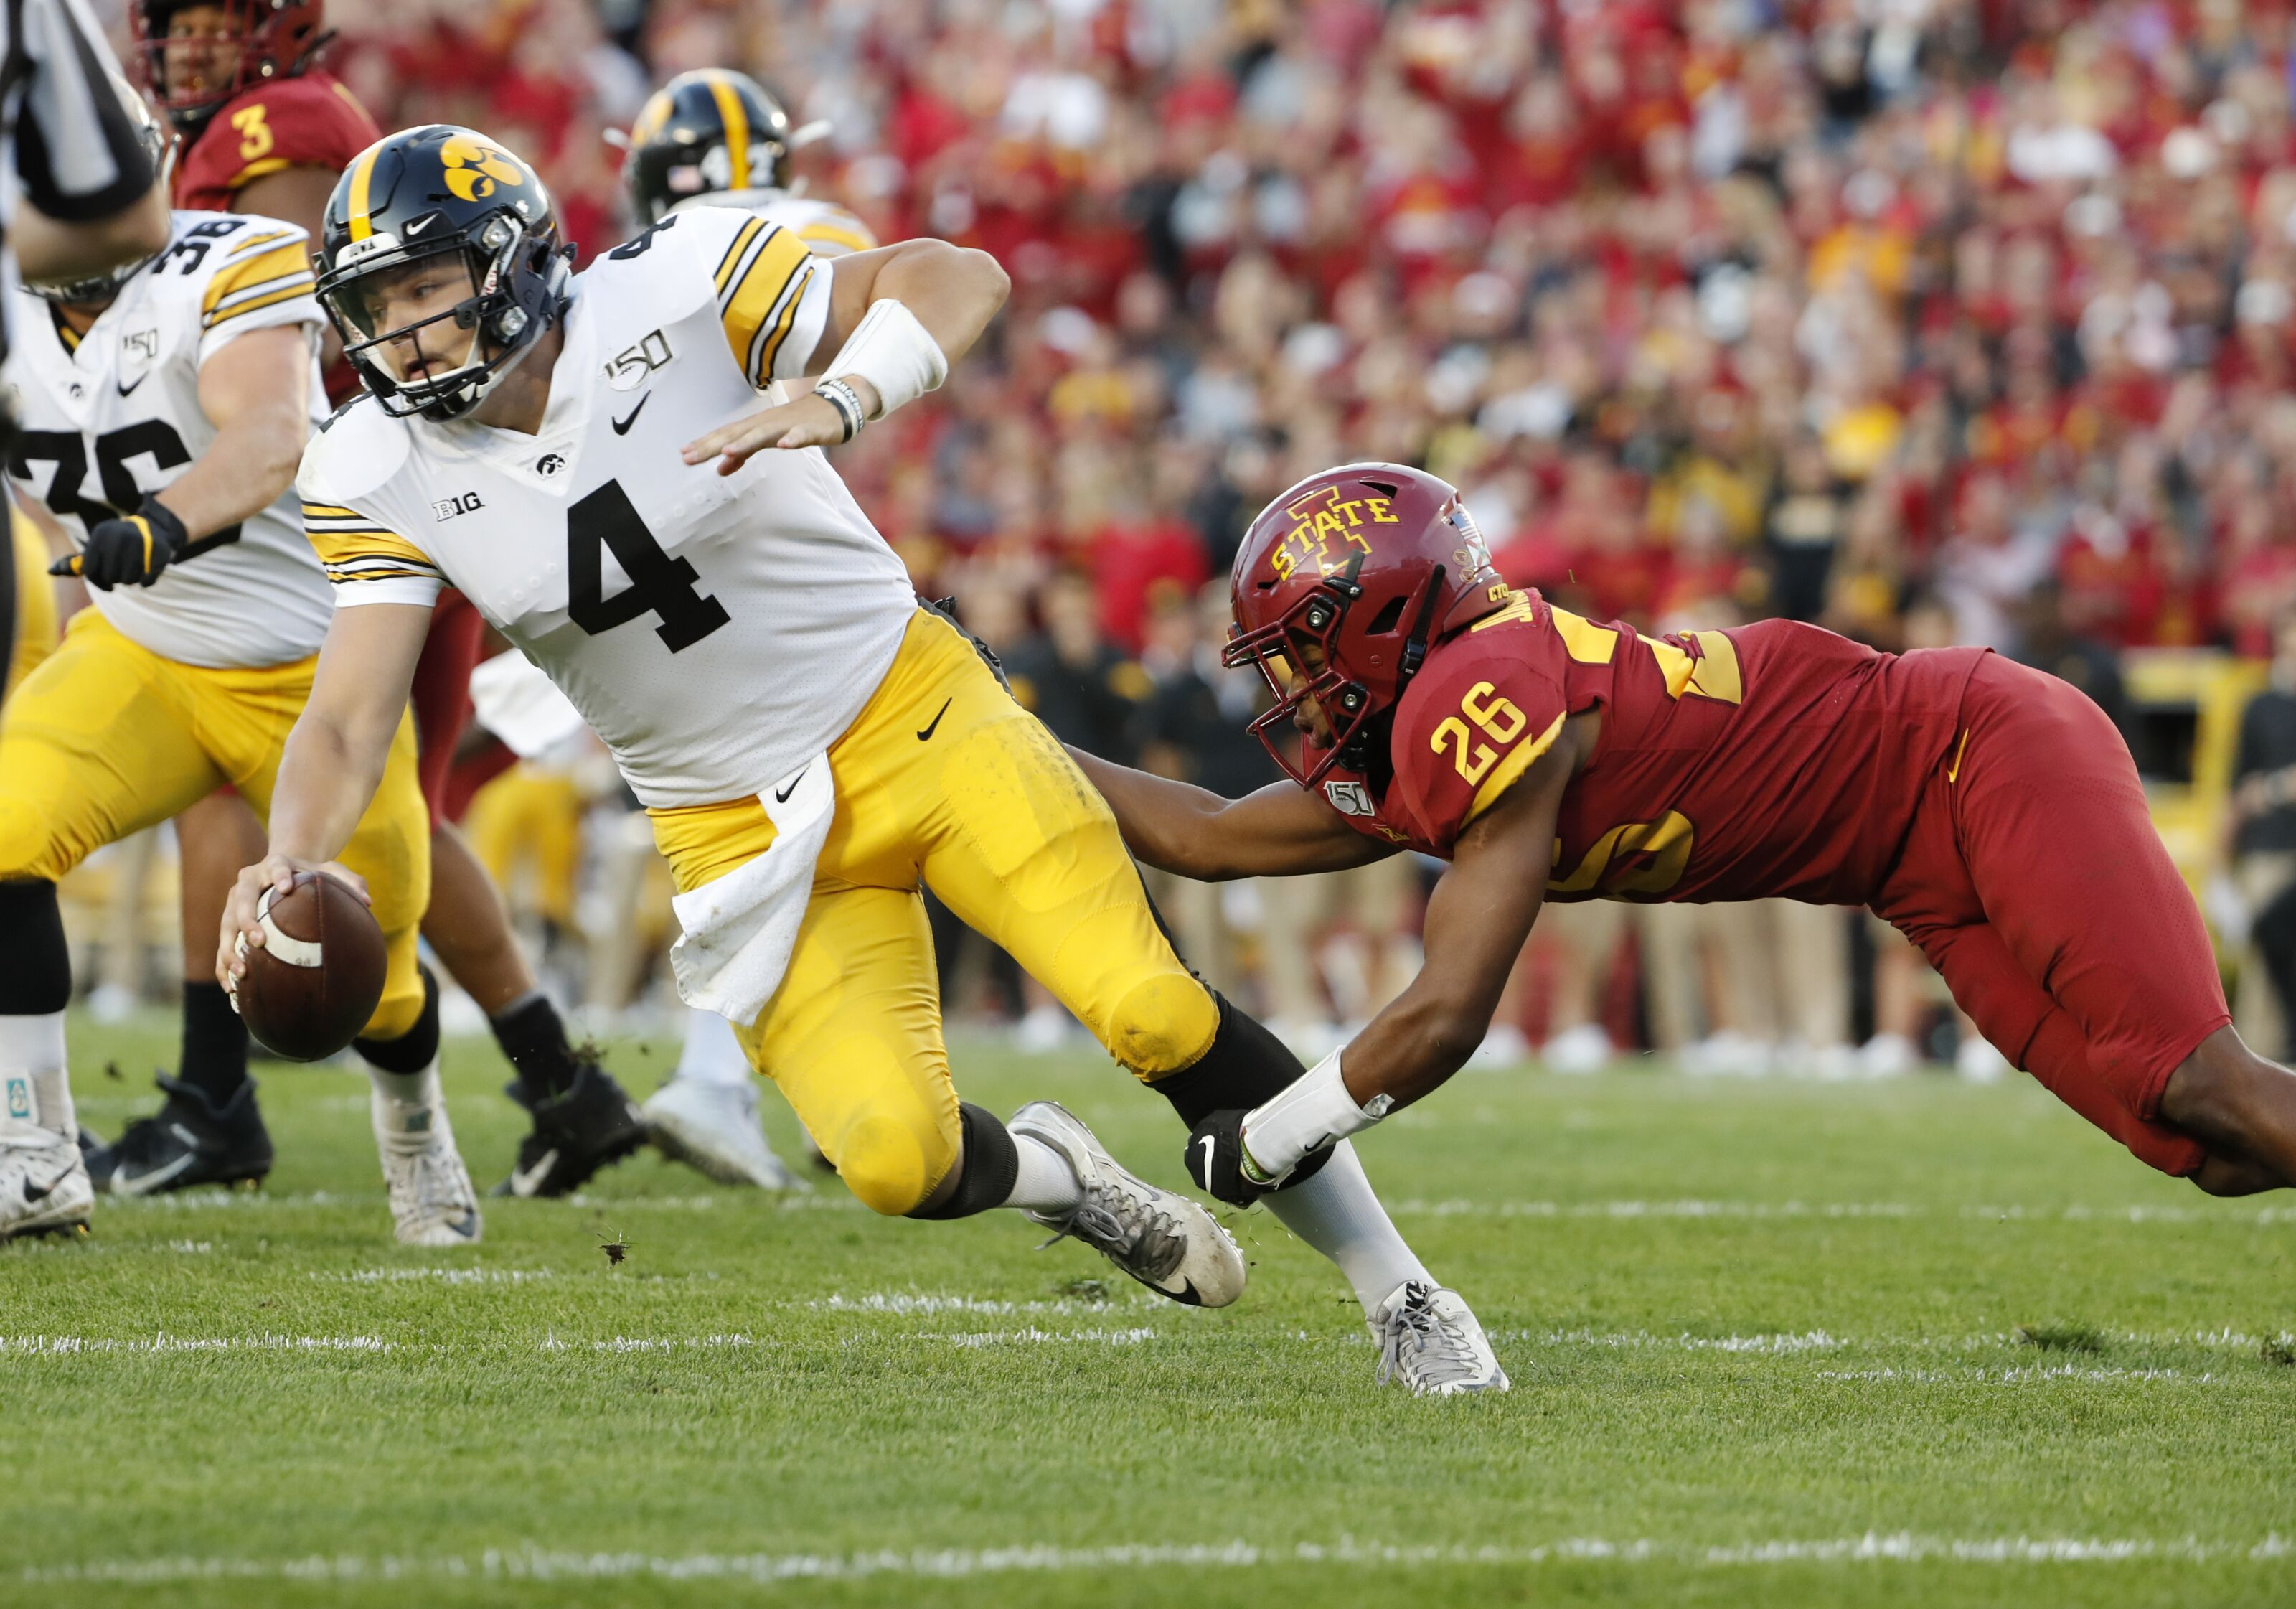 Iowa football: Nate Stanley is our quarterback, and that's a good thing